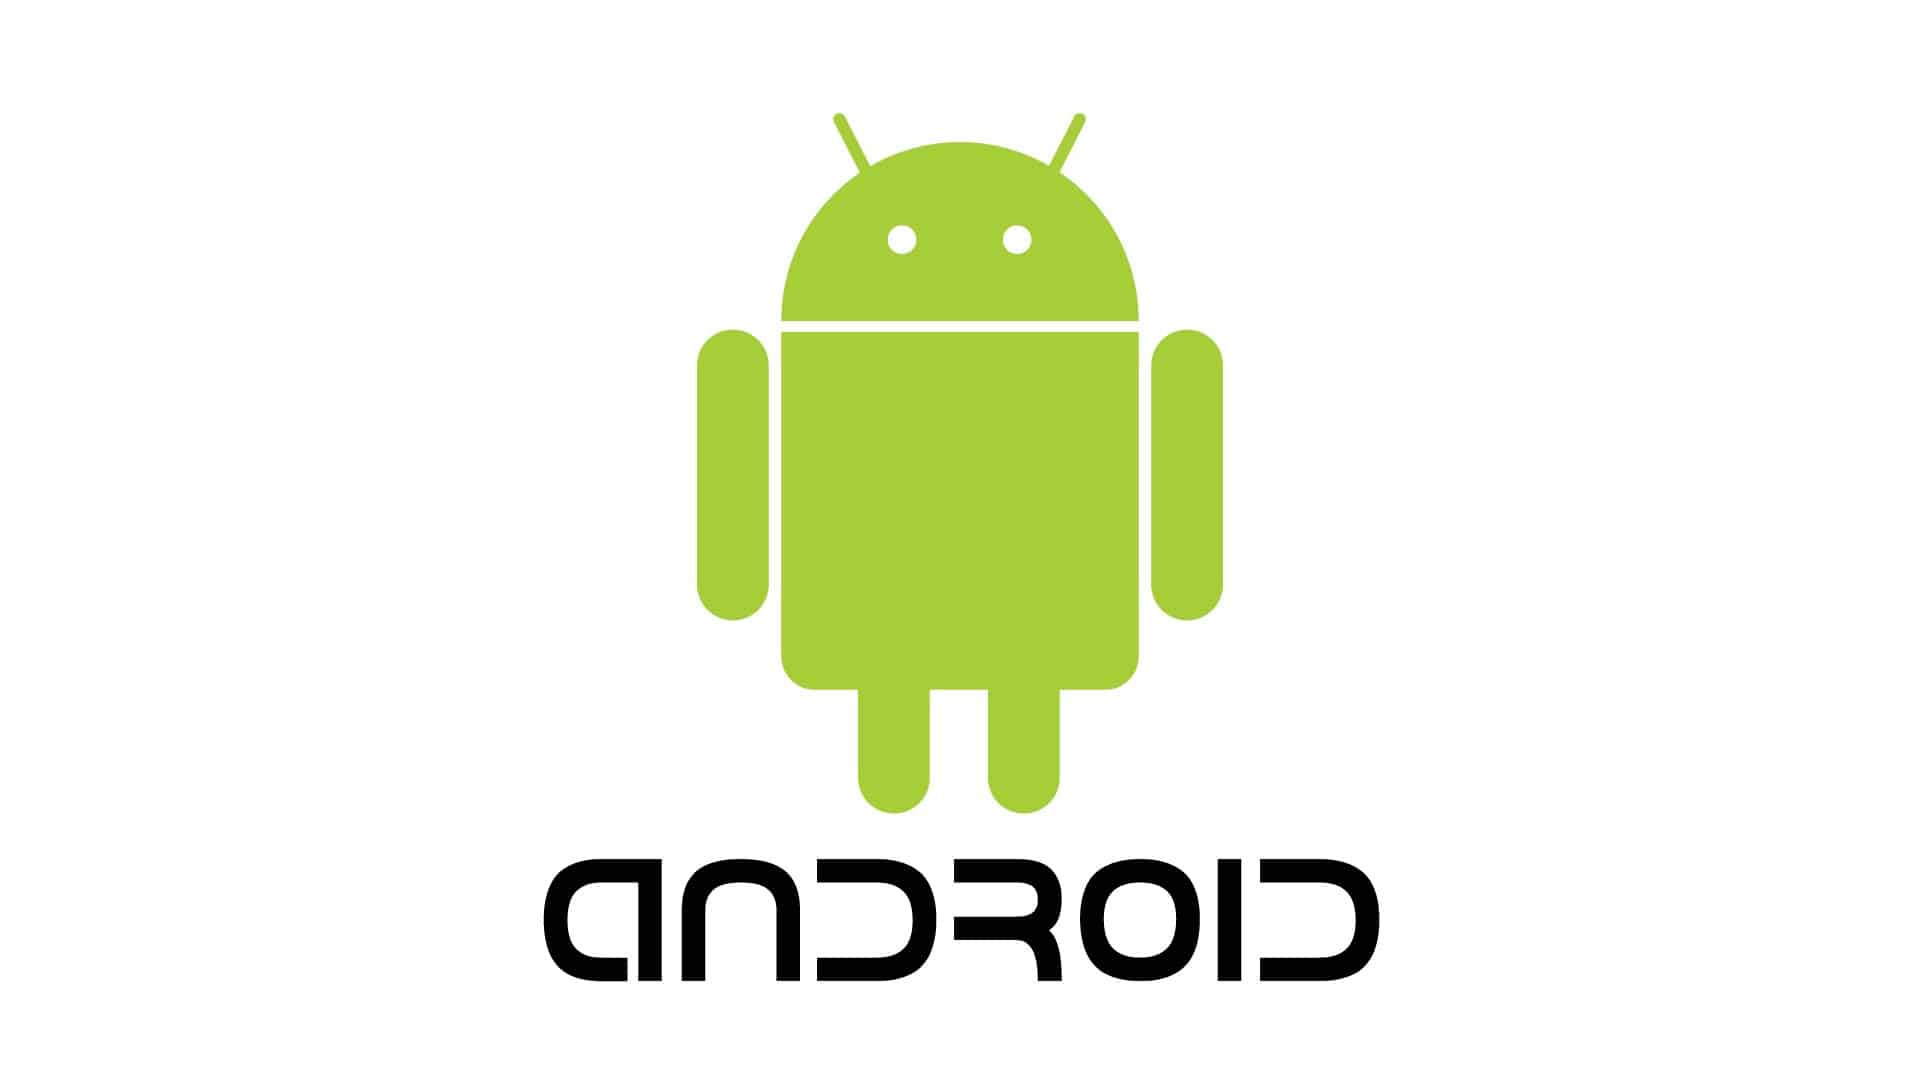 Development-programming-of-Android-mobile-application-for-smartphone-tablets-in-Egypt-Saudi-Arabia-KSA-Riyadh-Jeddah-Qatar-Dubai-Kuwait-and-UAE-by-Xapps-software-company-in-Egypt.jpg